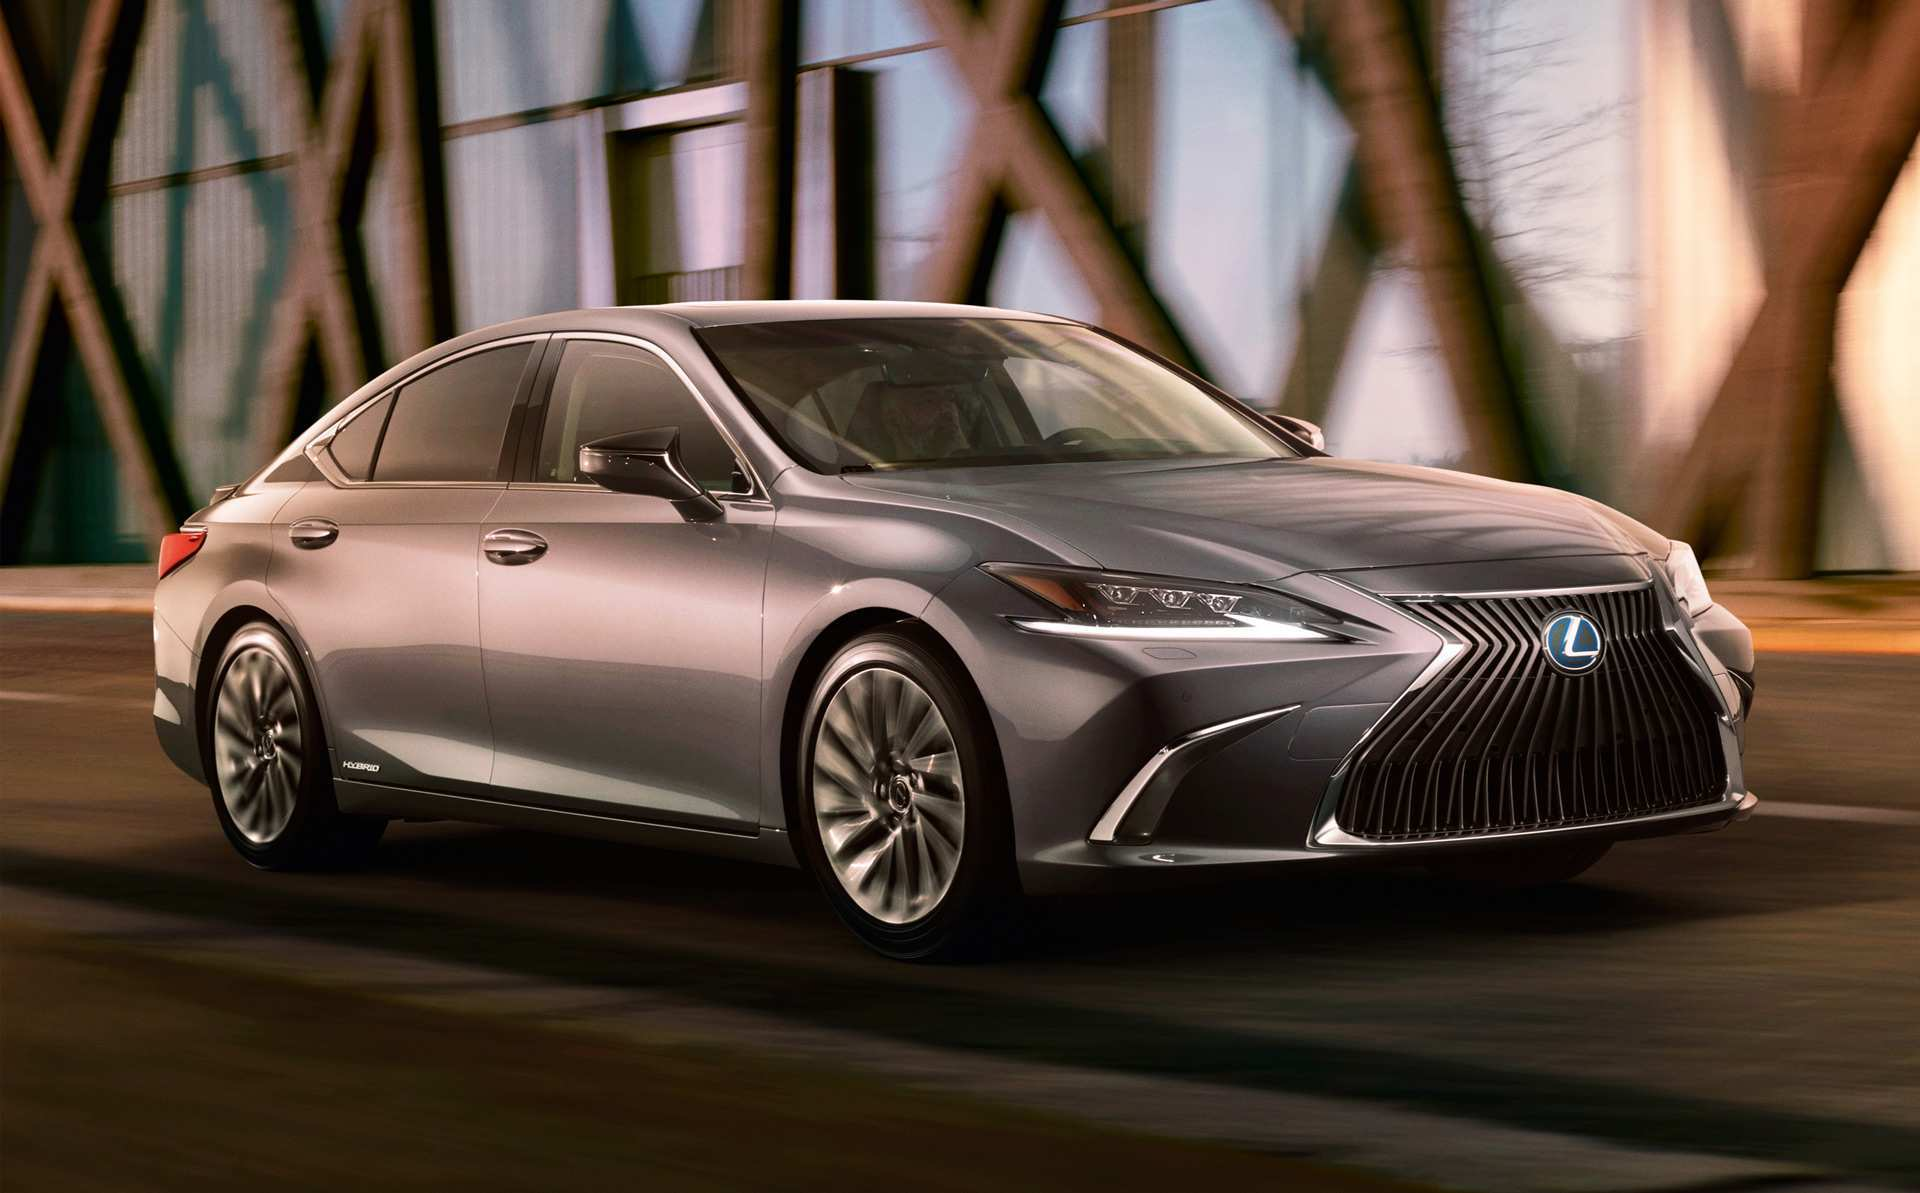 94 Concept of 2019 Lexus Gs Redesign Price and Review with 2019 Lexus Gs Redesign